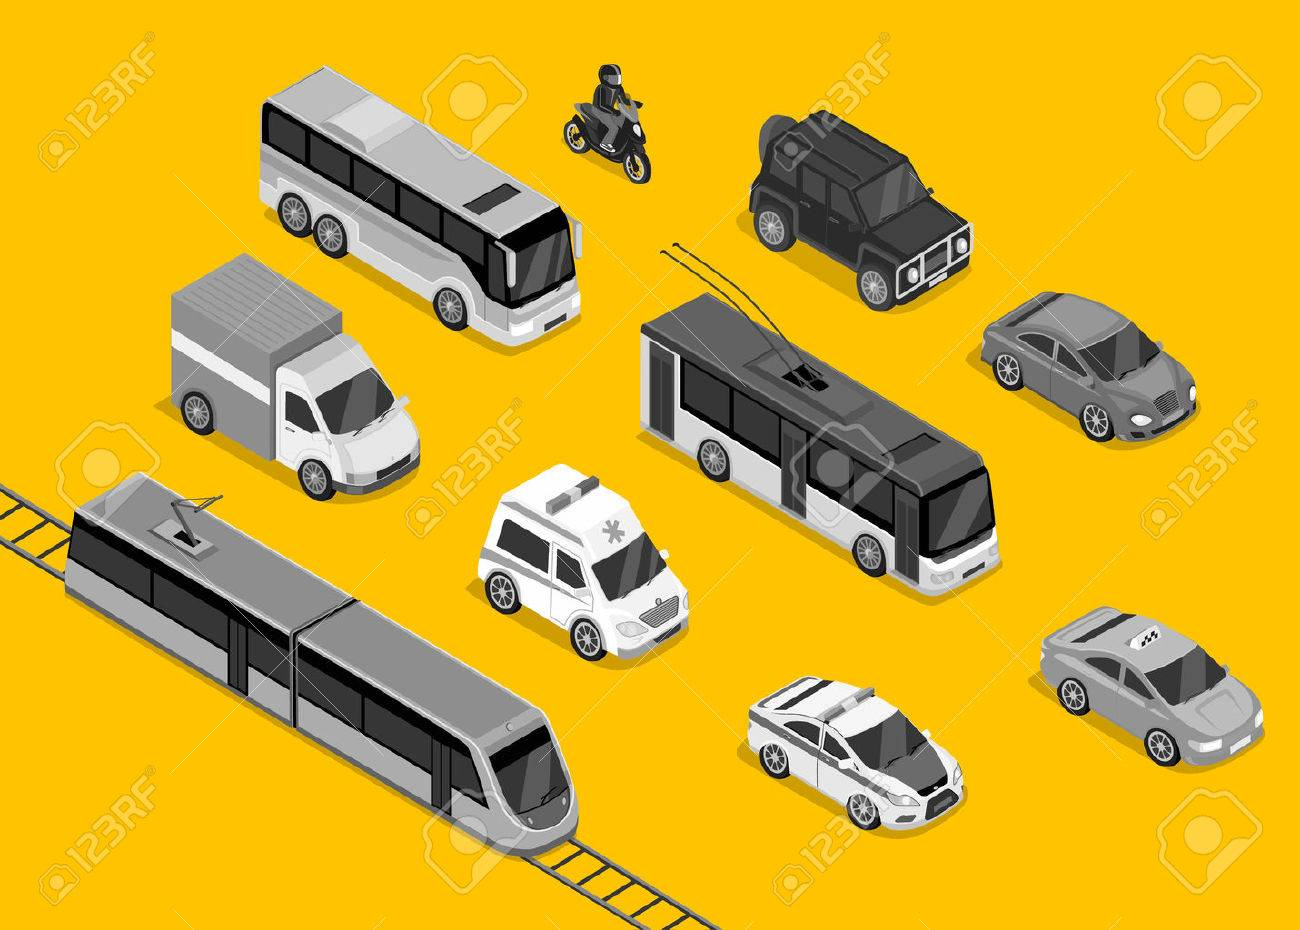 Isometric 3d transport set flat design. Car vehicle, transportation traffic, truck van, auto cargo, bus and automobile, police and motorcycle illustration - 51810364